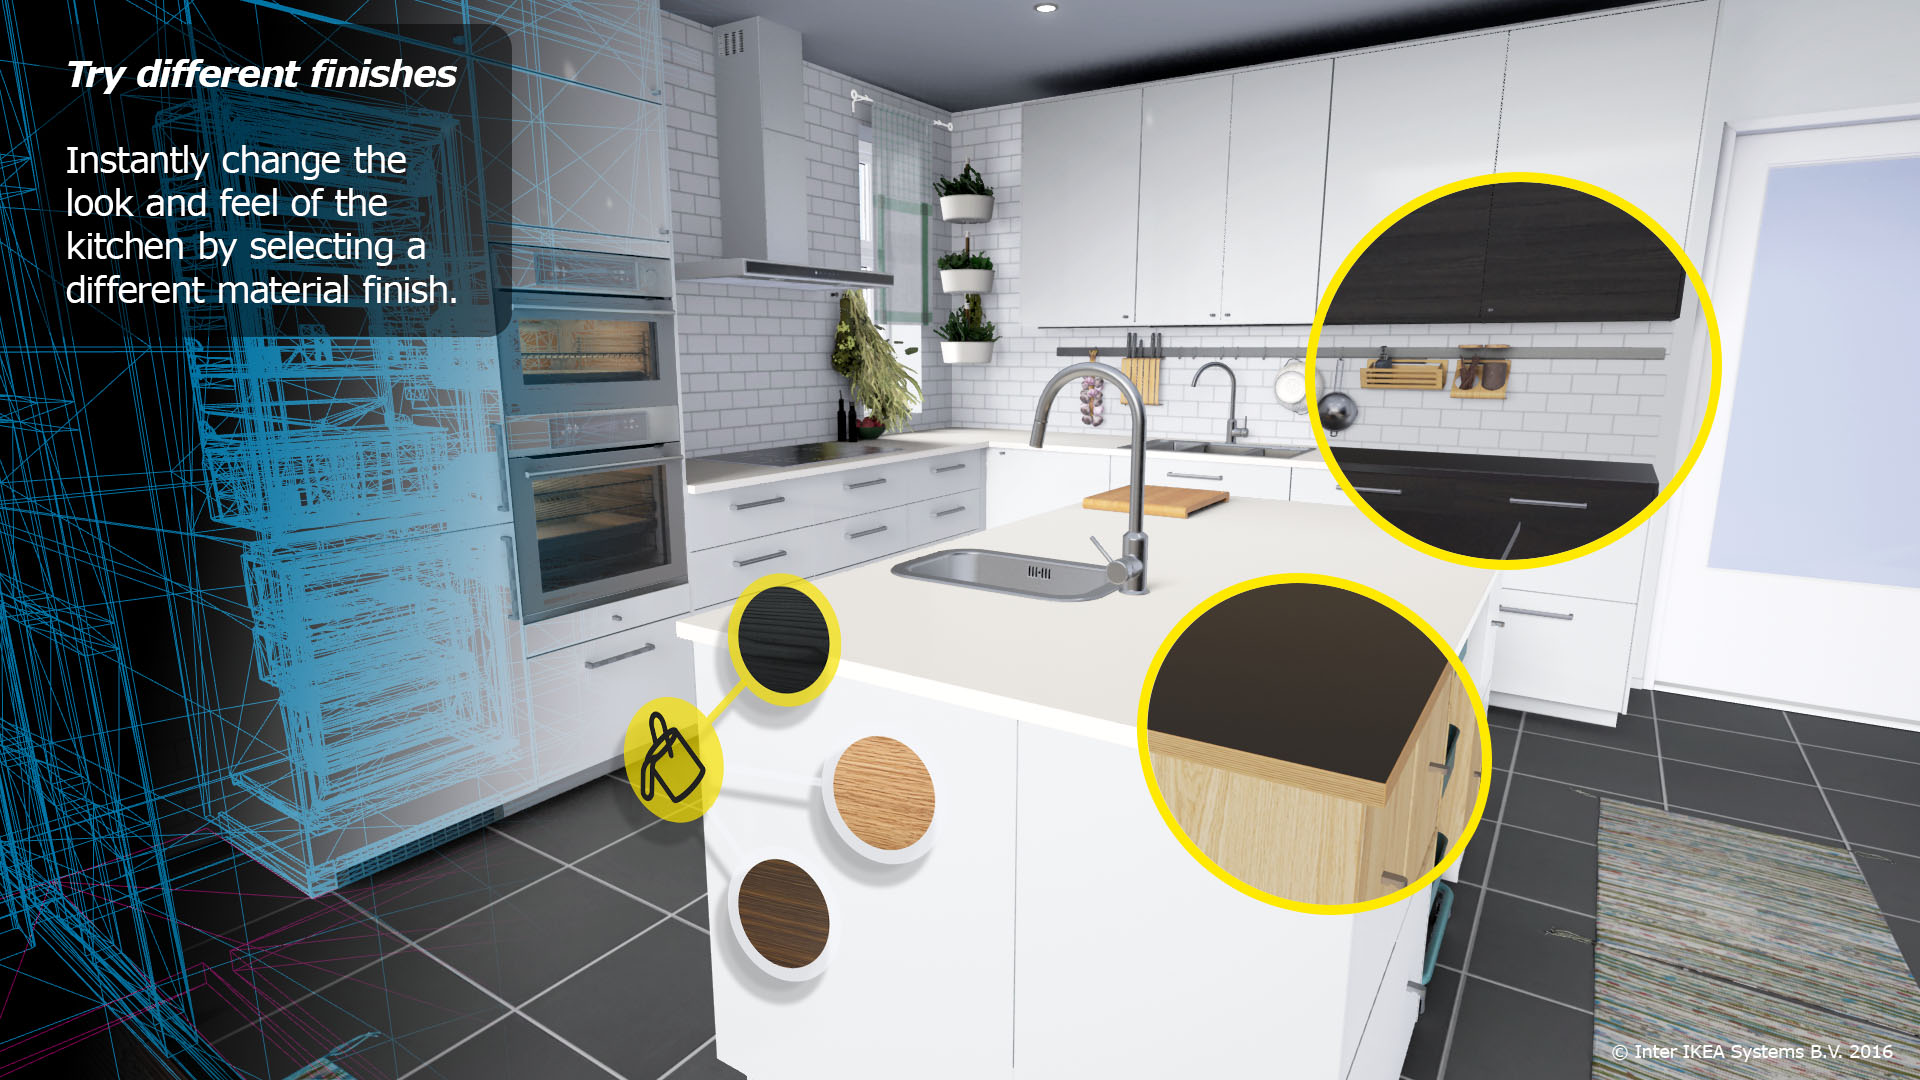 IKEA s Virtual Reality Kitchen Game is Not For The Faint of Heart